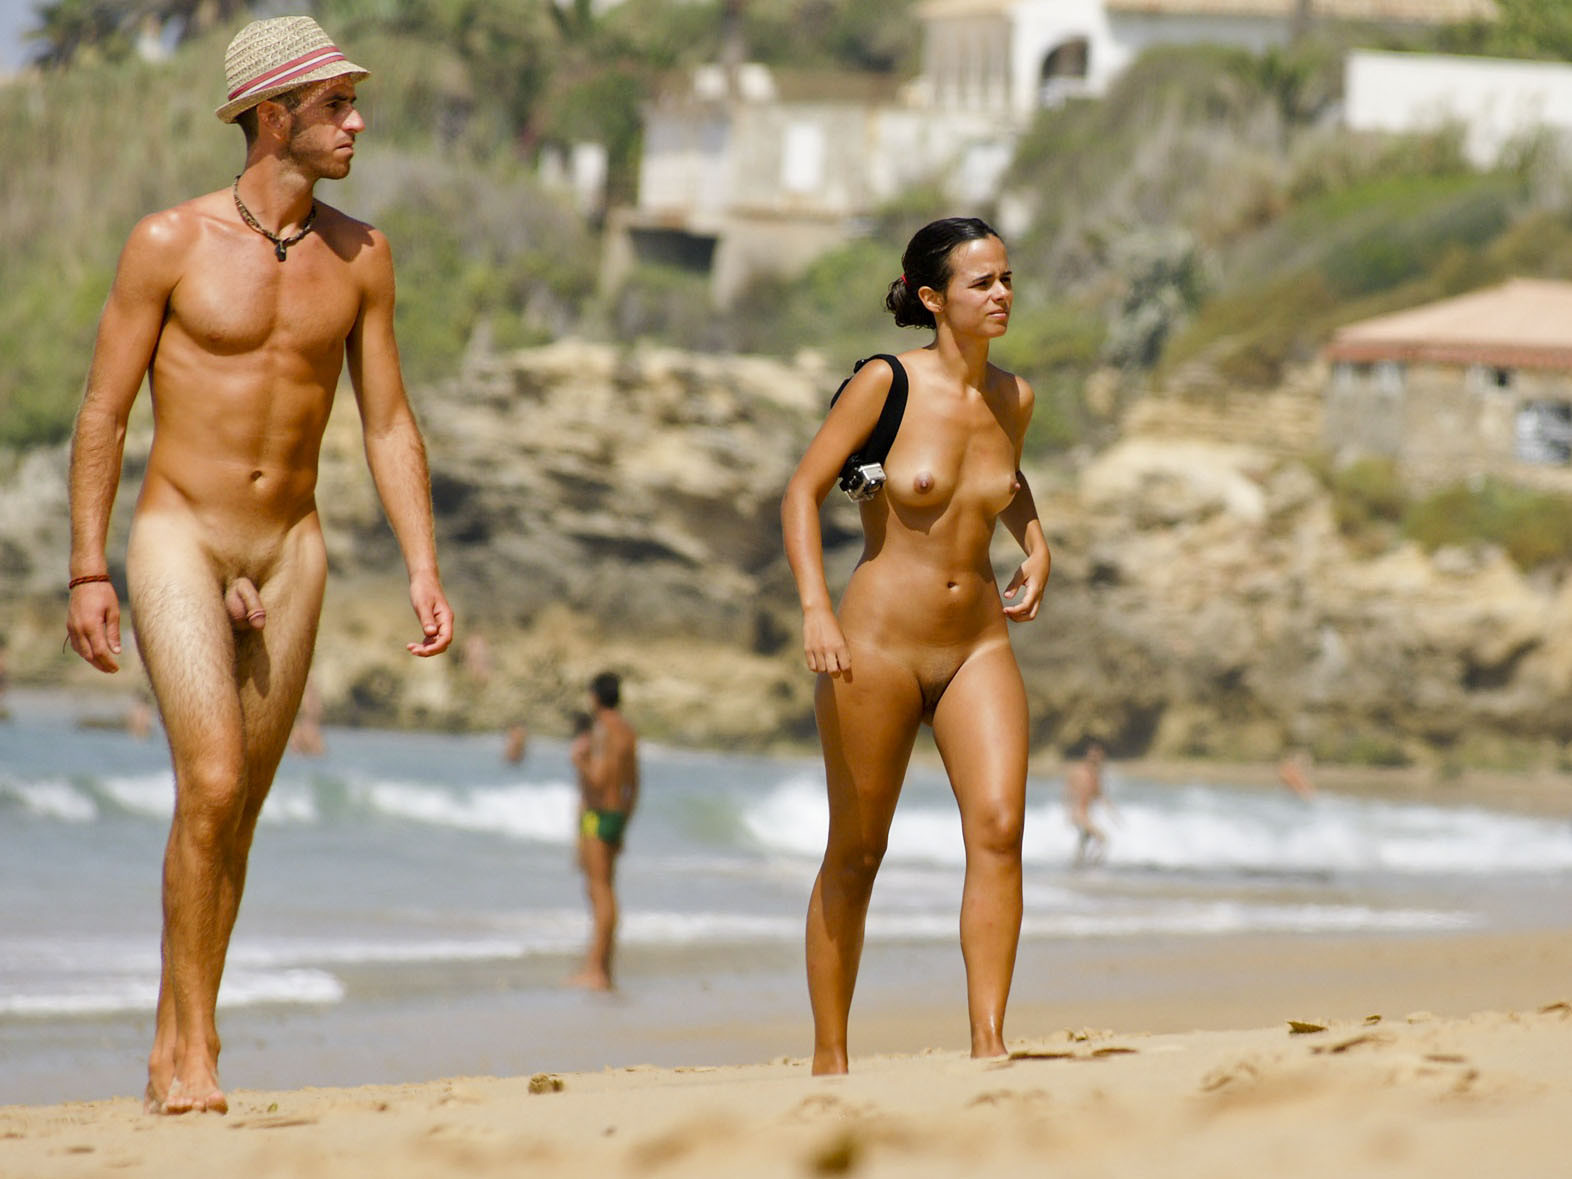 Biracial nudity pictures — pic 15